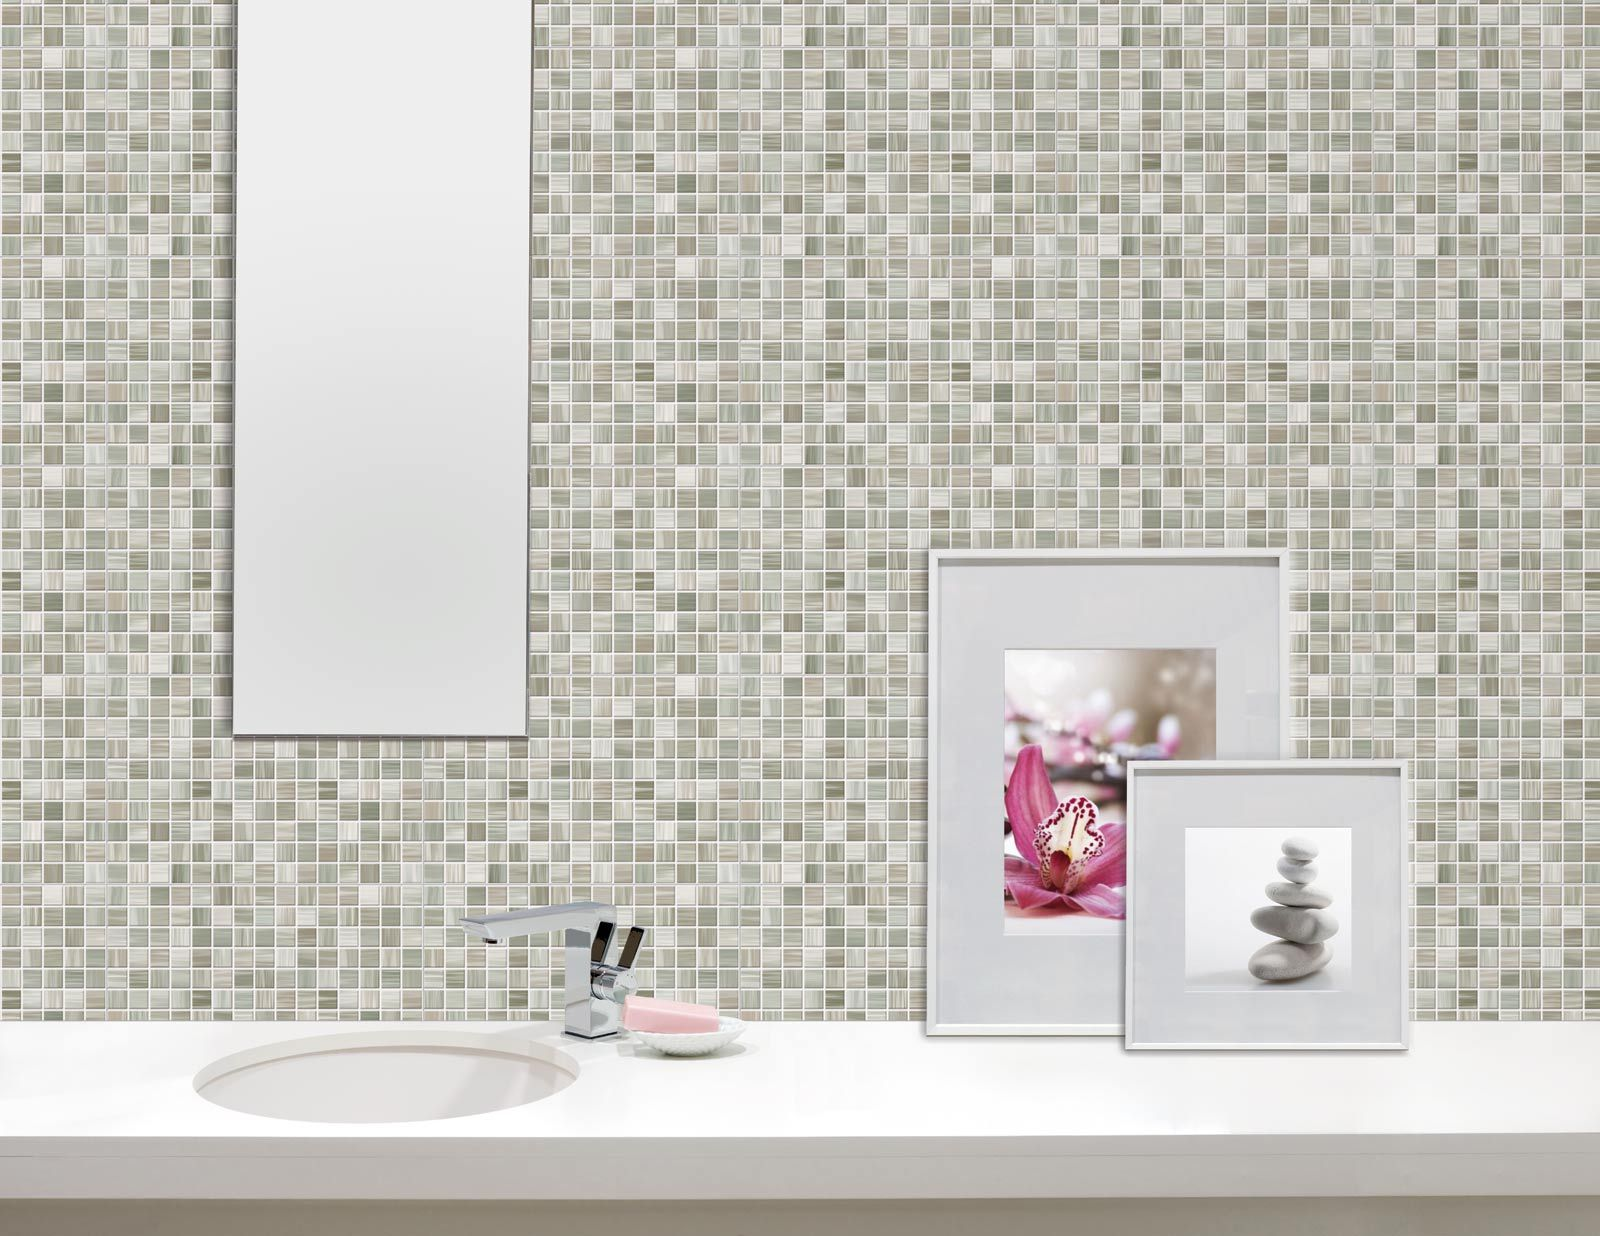 Ceramic Wall Tiles Kitchen Bits Ceramic Wall Tiles For Kitchen And Bathroom